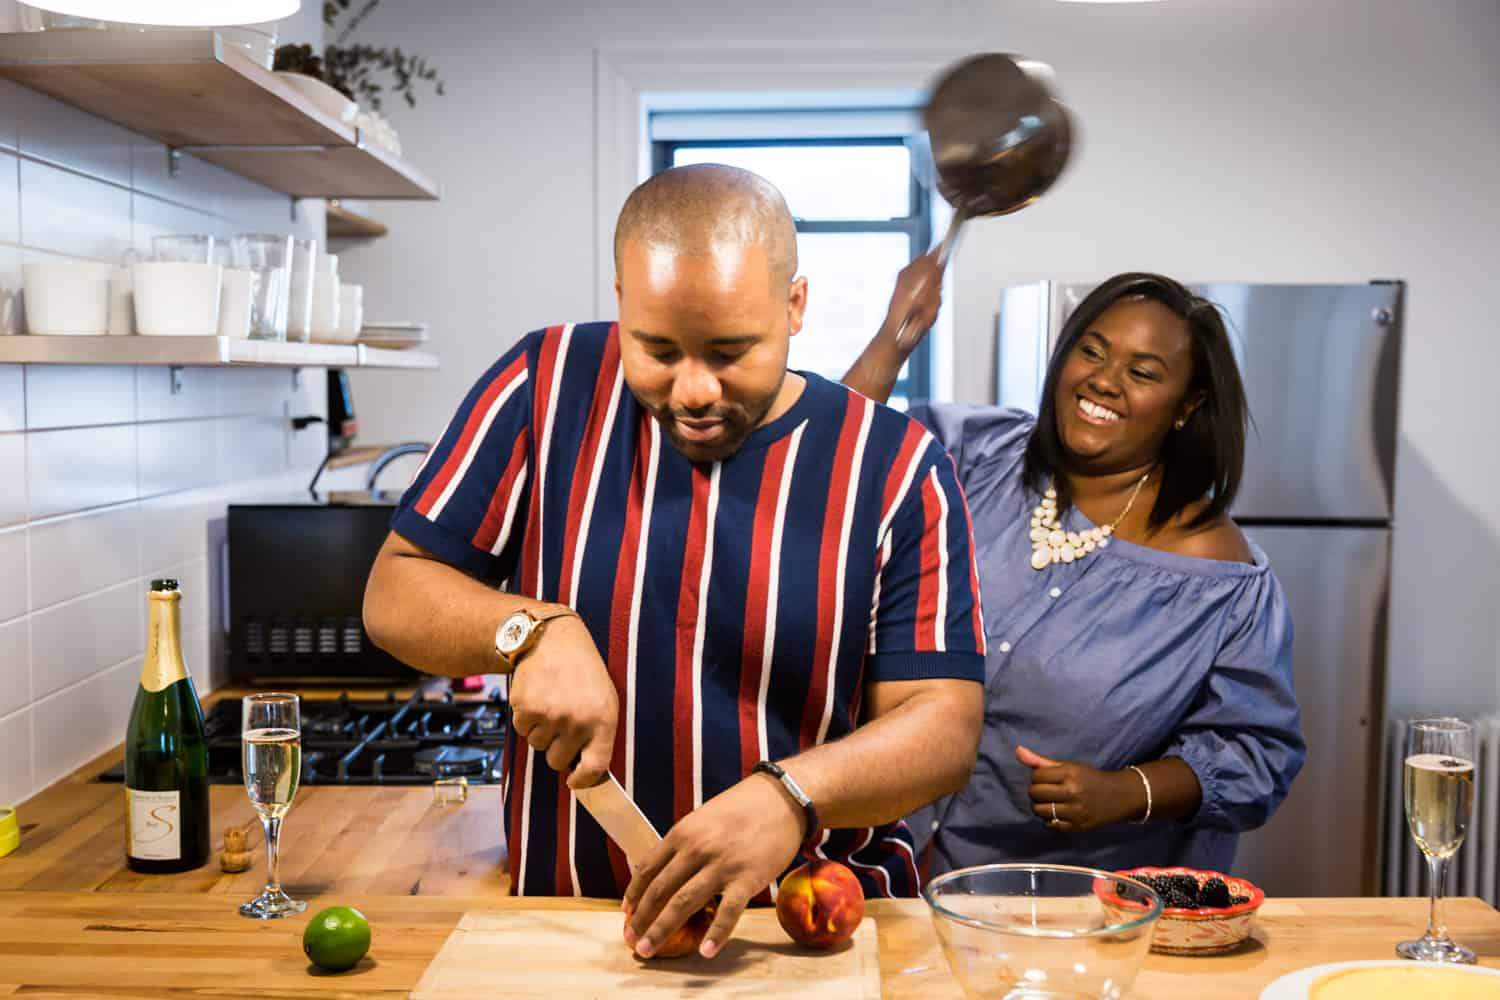 Woman raising pan over man cutting fruit for an article on creative engagement photo shoot ideas